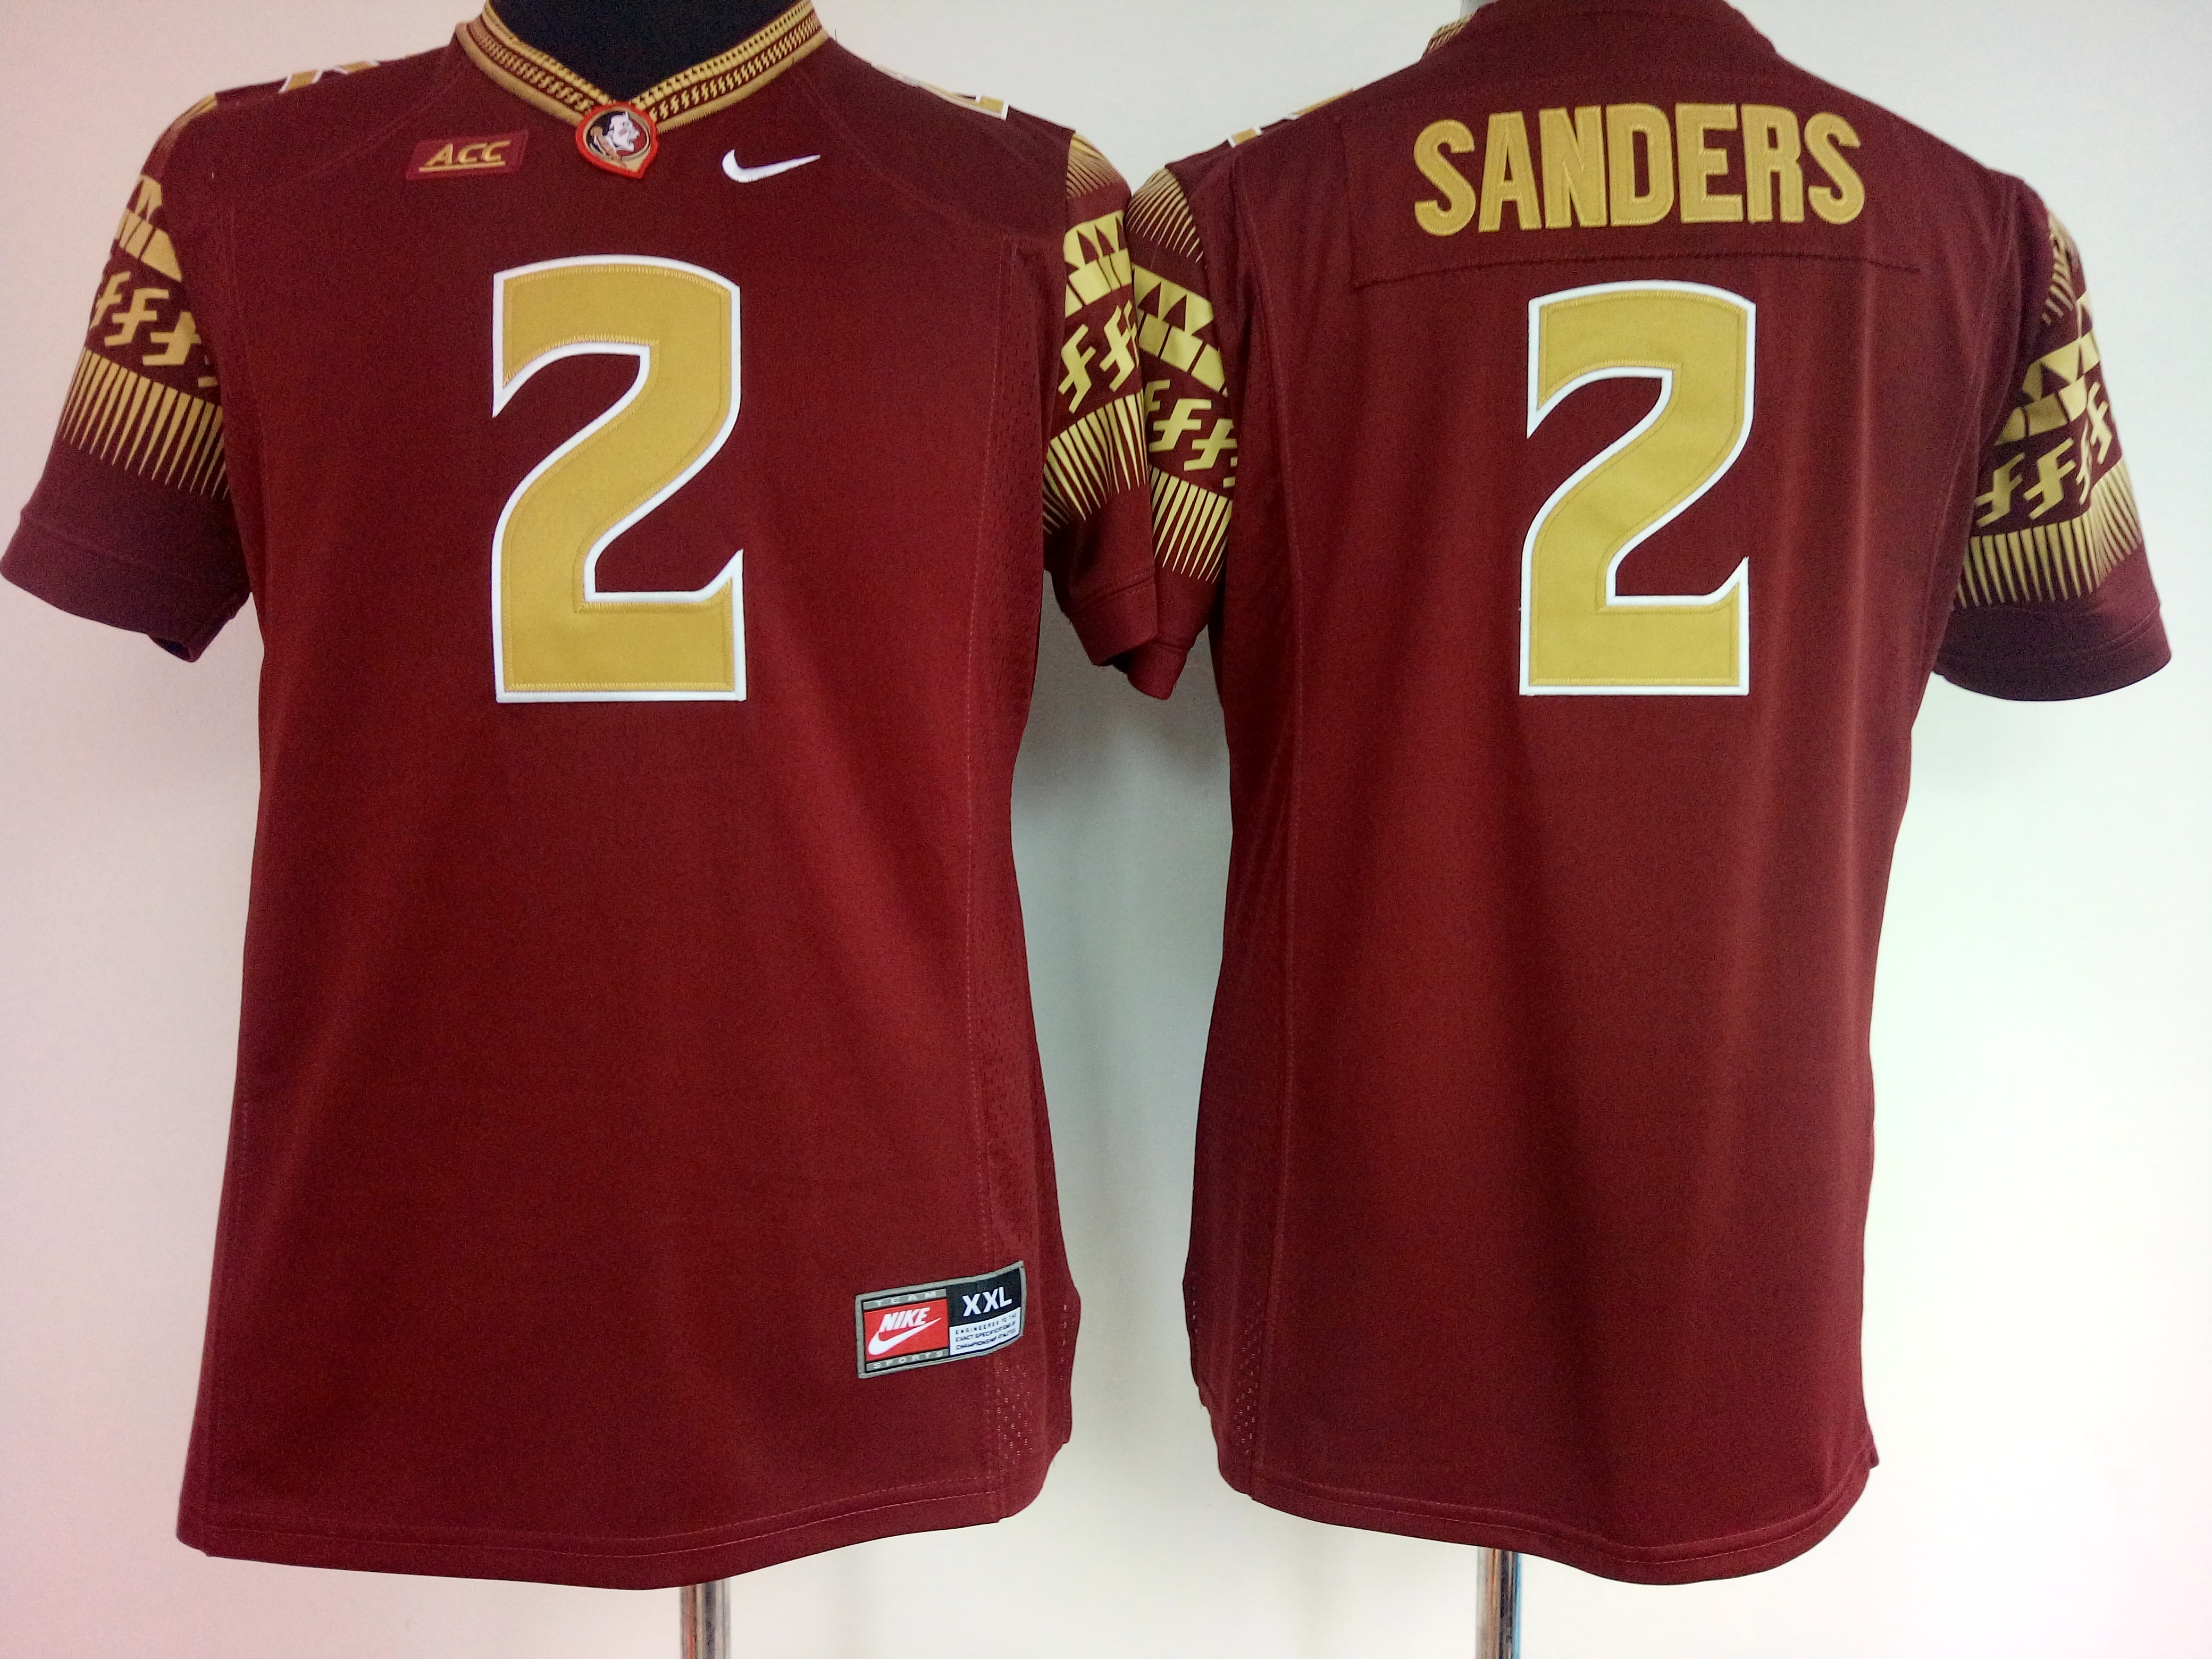 NCAA Womens Florida State Seminoles Red 2 Sanders jerseys